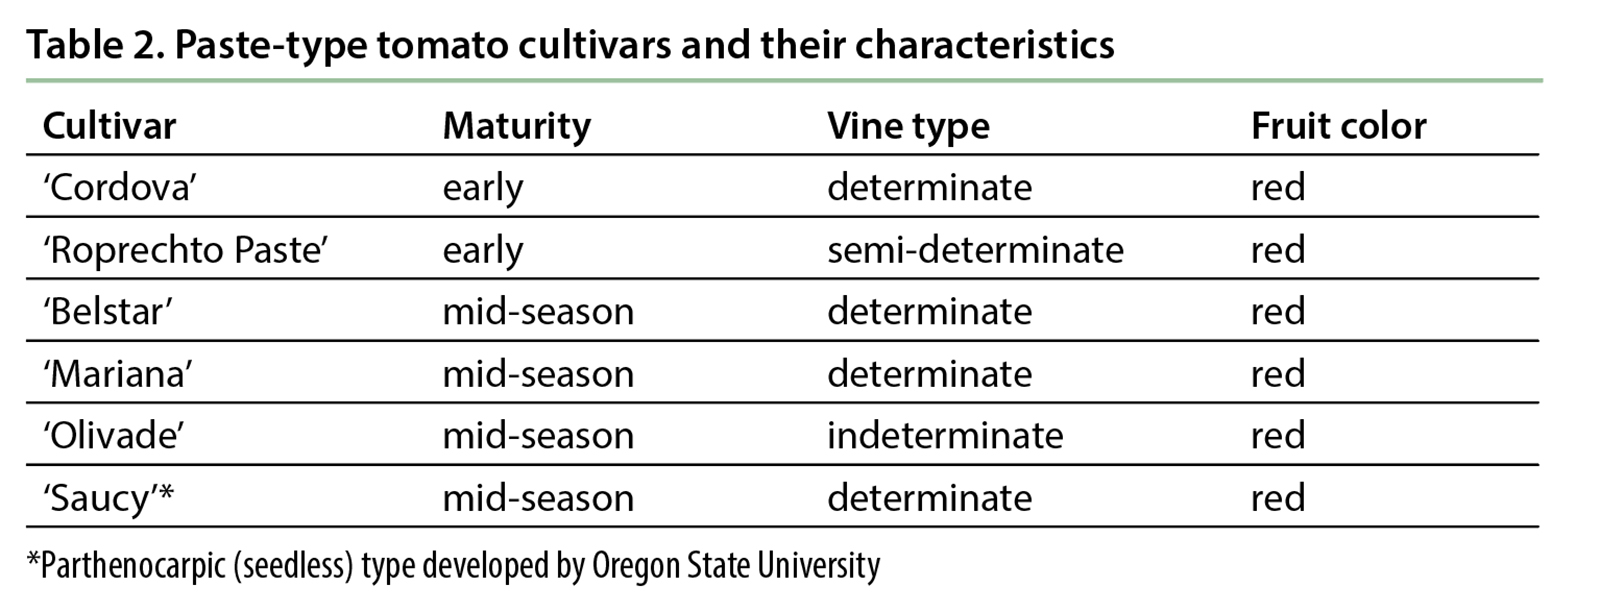 Table 2. Paste-type tomato cultivars and their characteristics